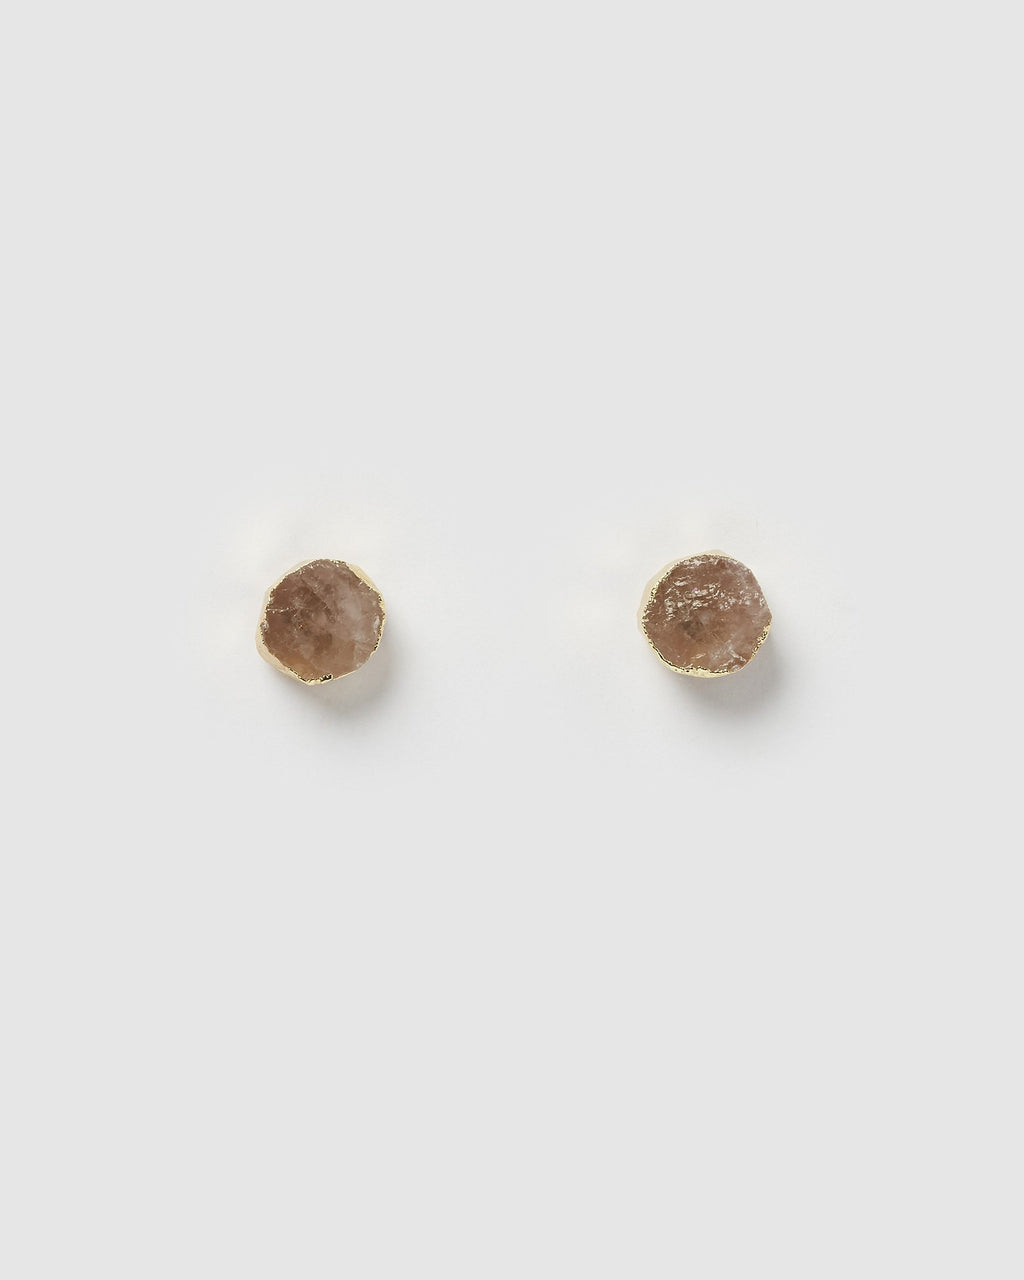 Miz Casa & Co Anenome Stud Earrings Rose Quartz